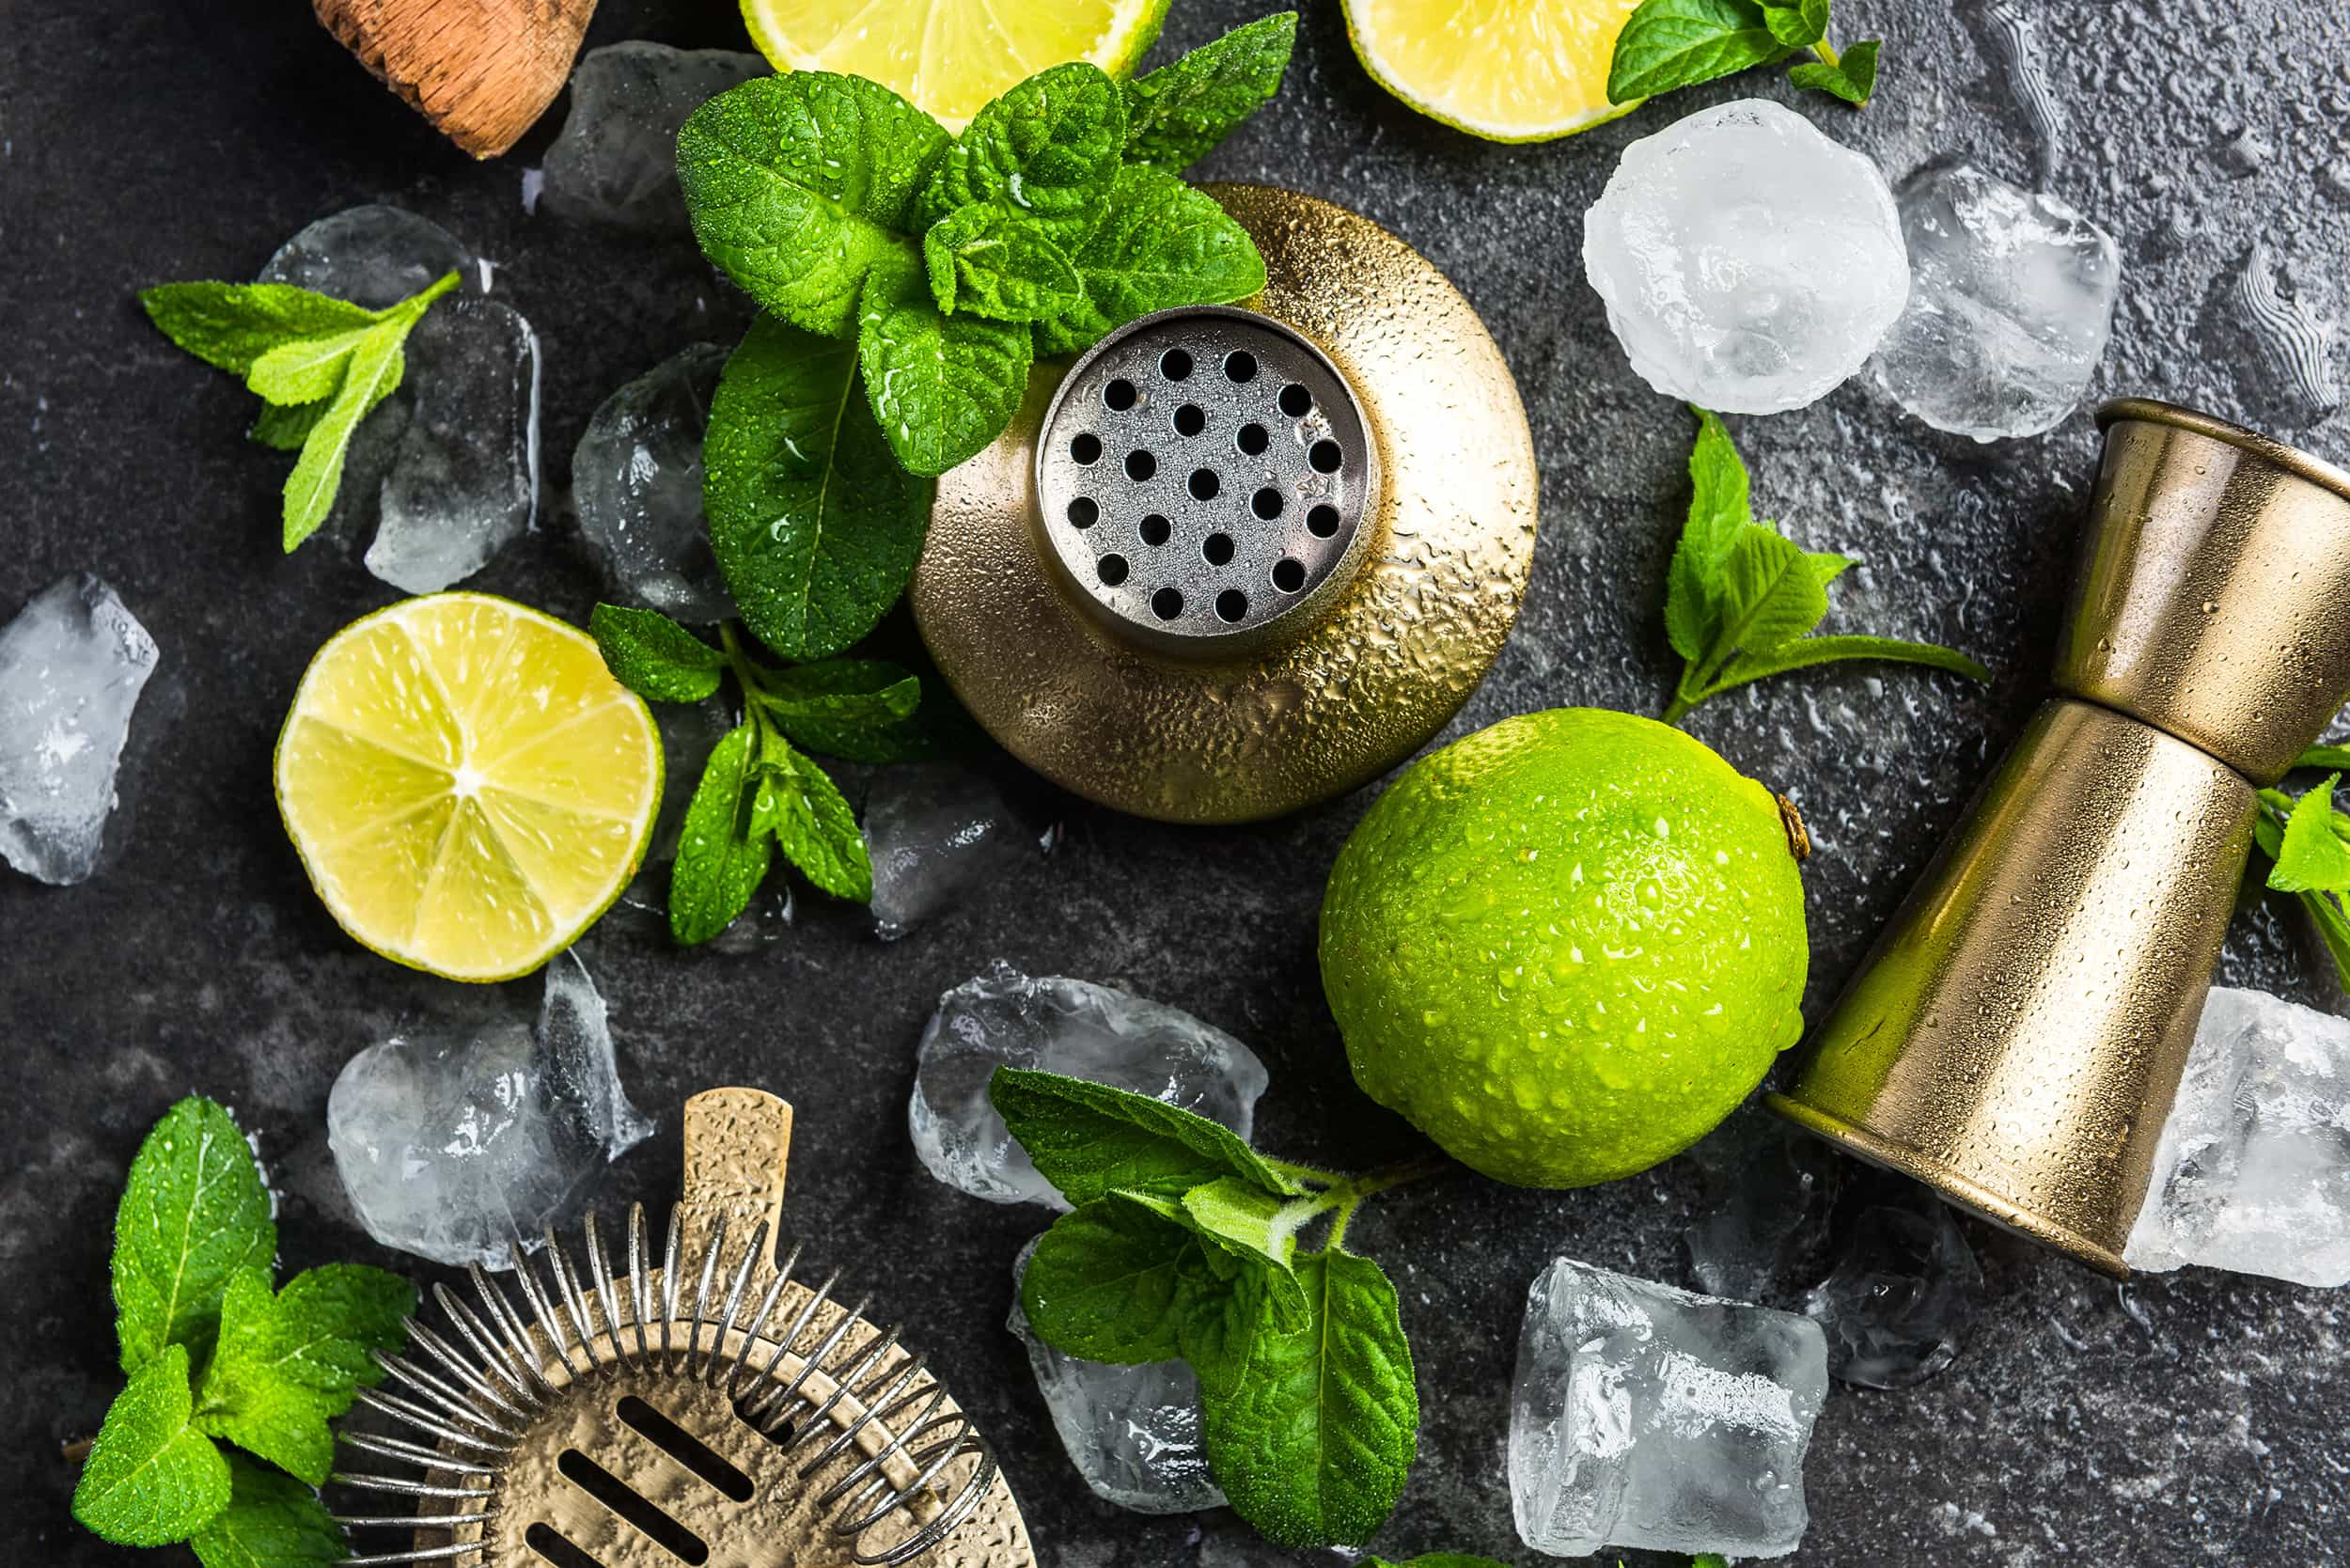 ingredients-and-tools-for-making-refreshing-F5PB29M-min-min